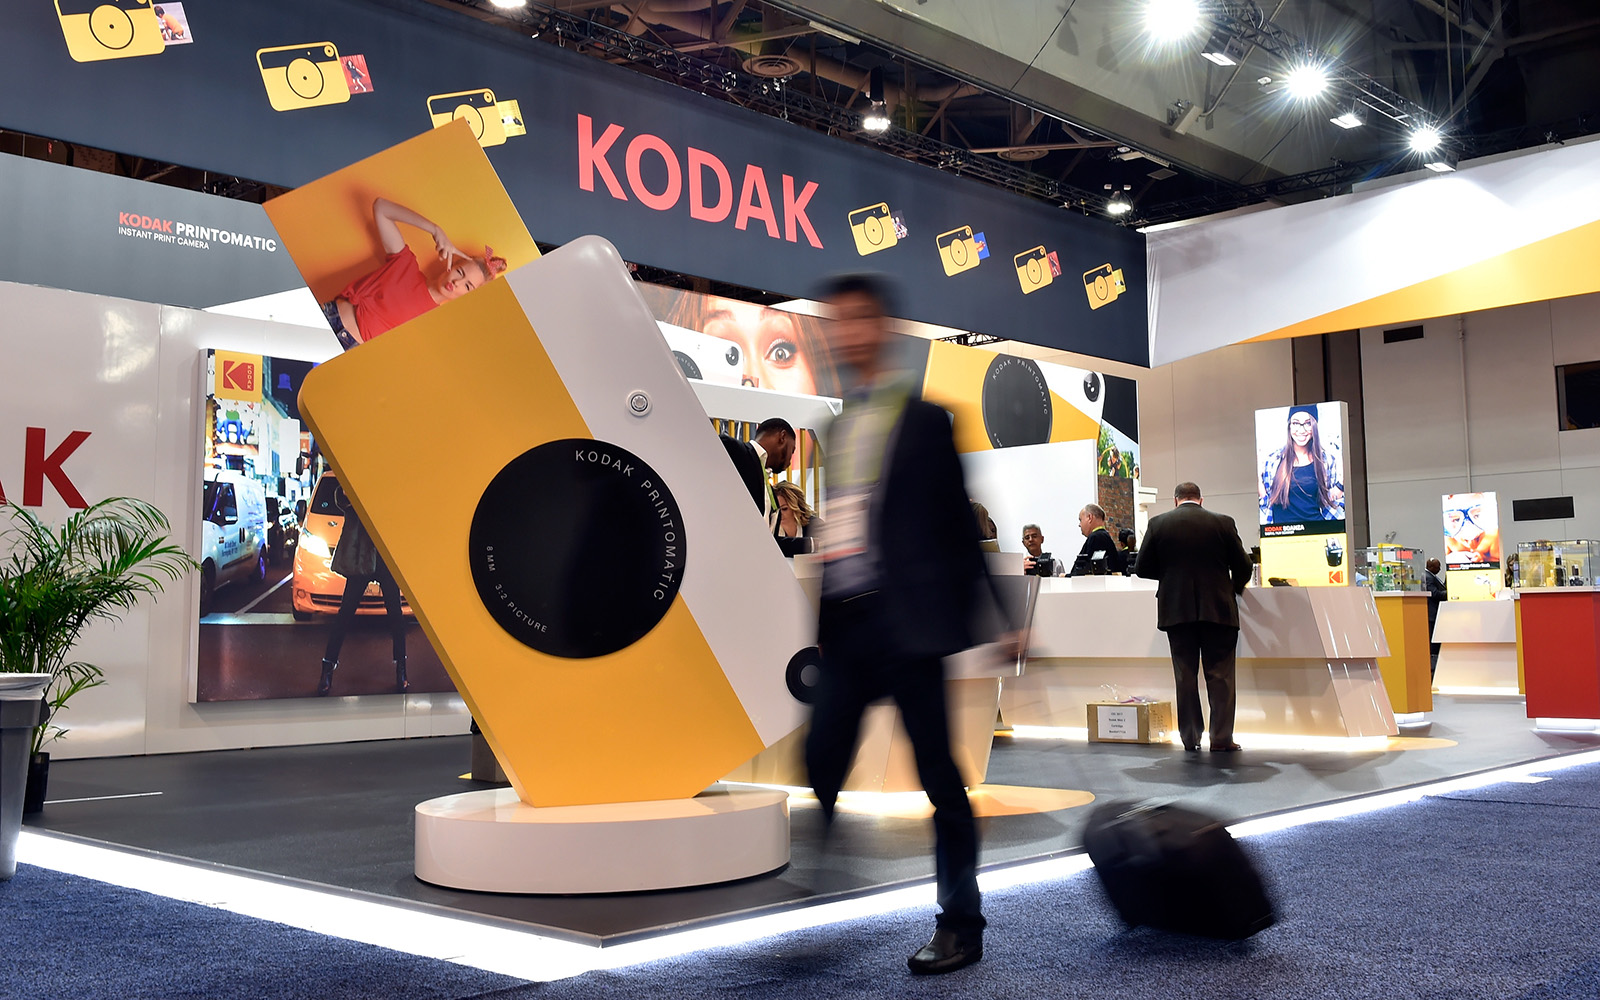 An attendee walks by the Kodak booth during CES 2018 at the Las Vegas Convention Center. CES is the world's largest annual consumer technology trade show. (David Becker/Getty Images)